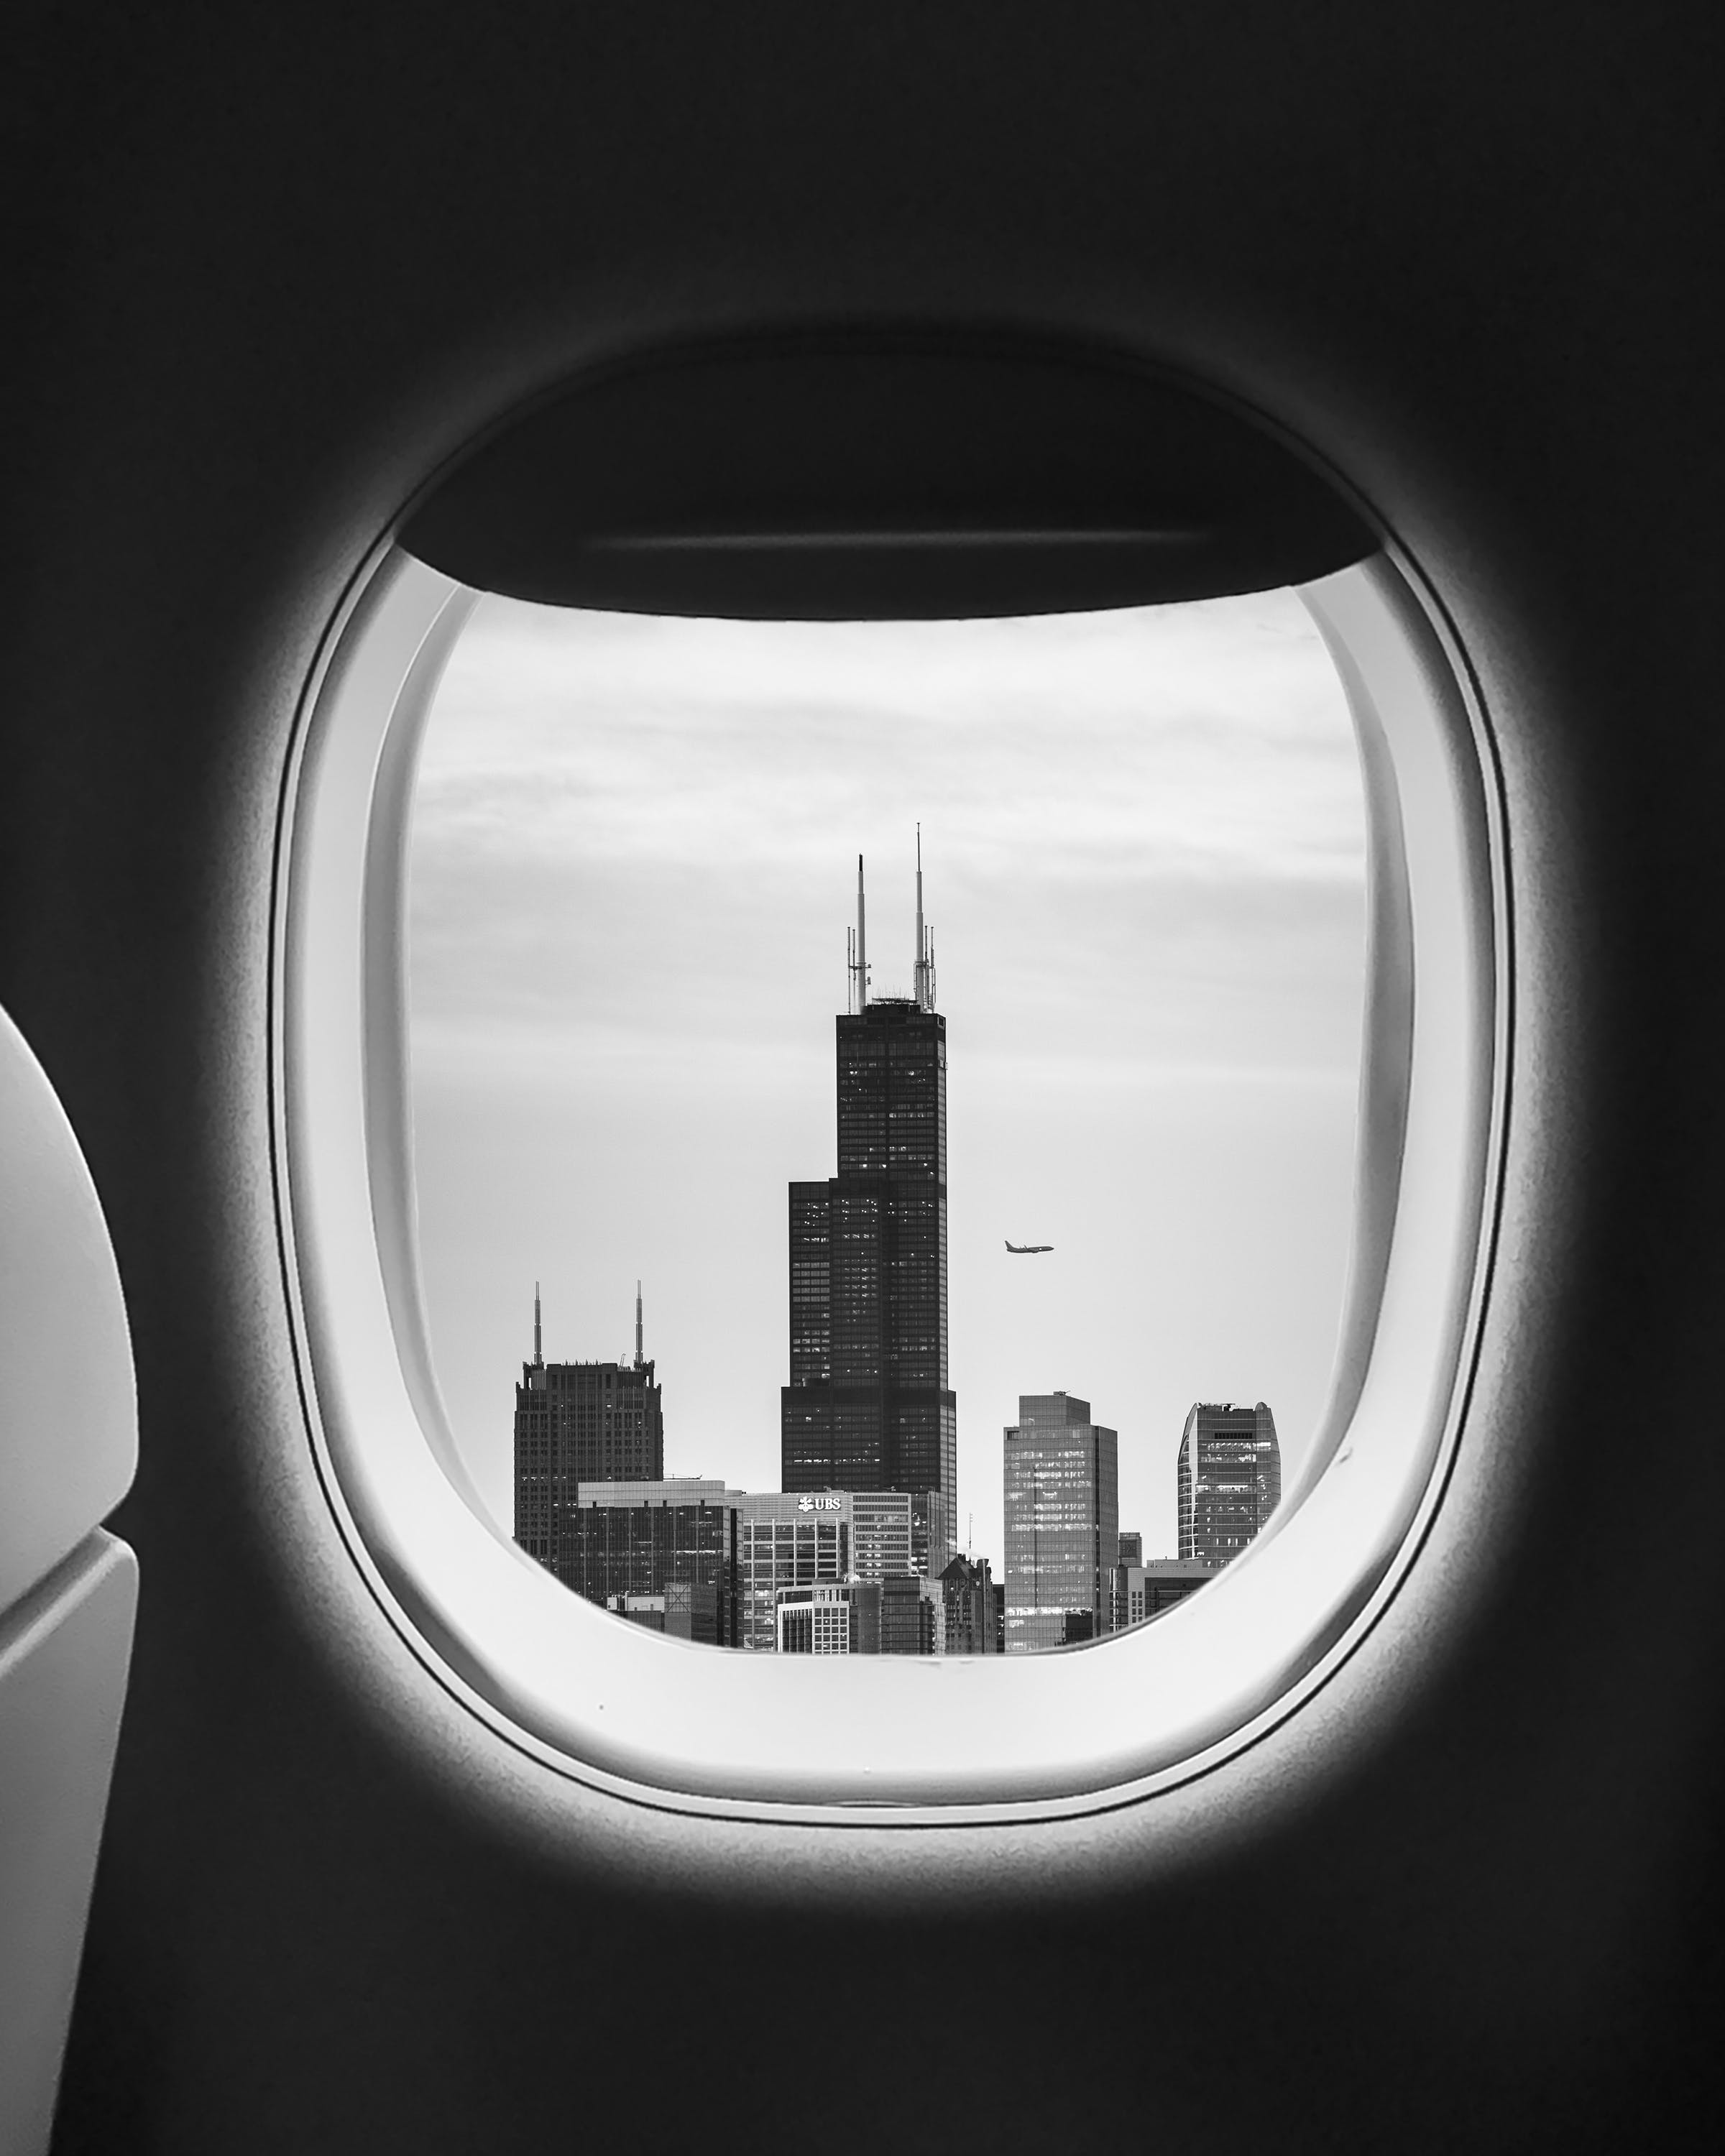 zu architektur, aviate, chicago, drinnen